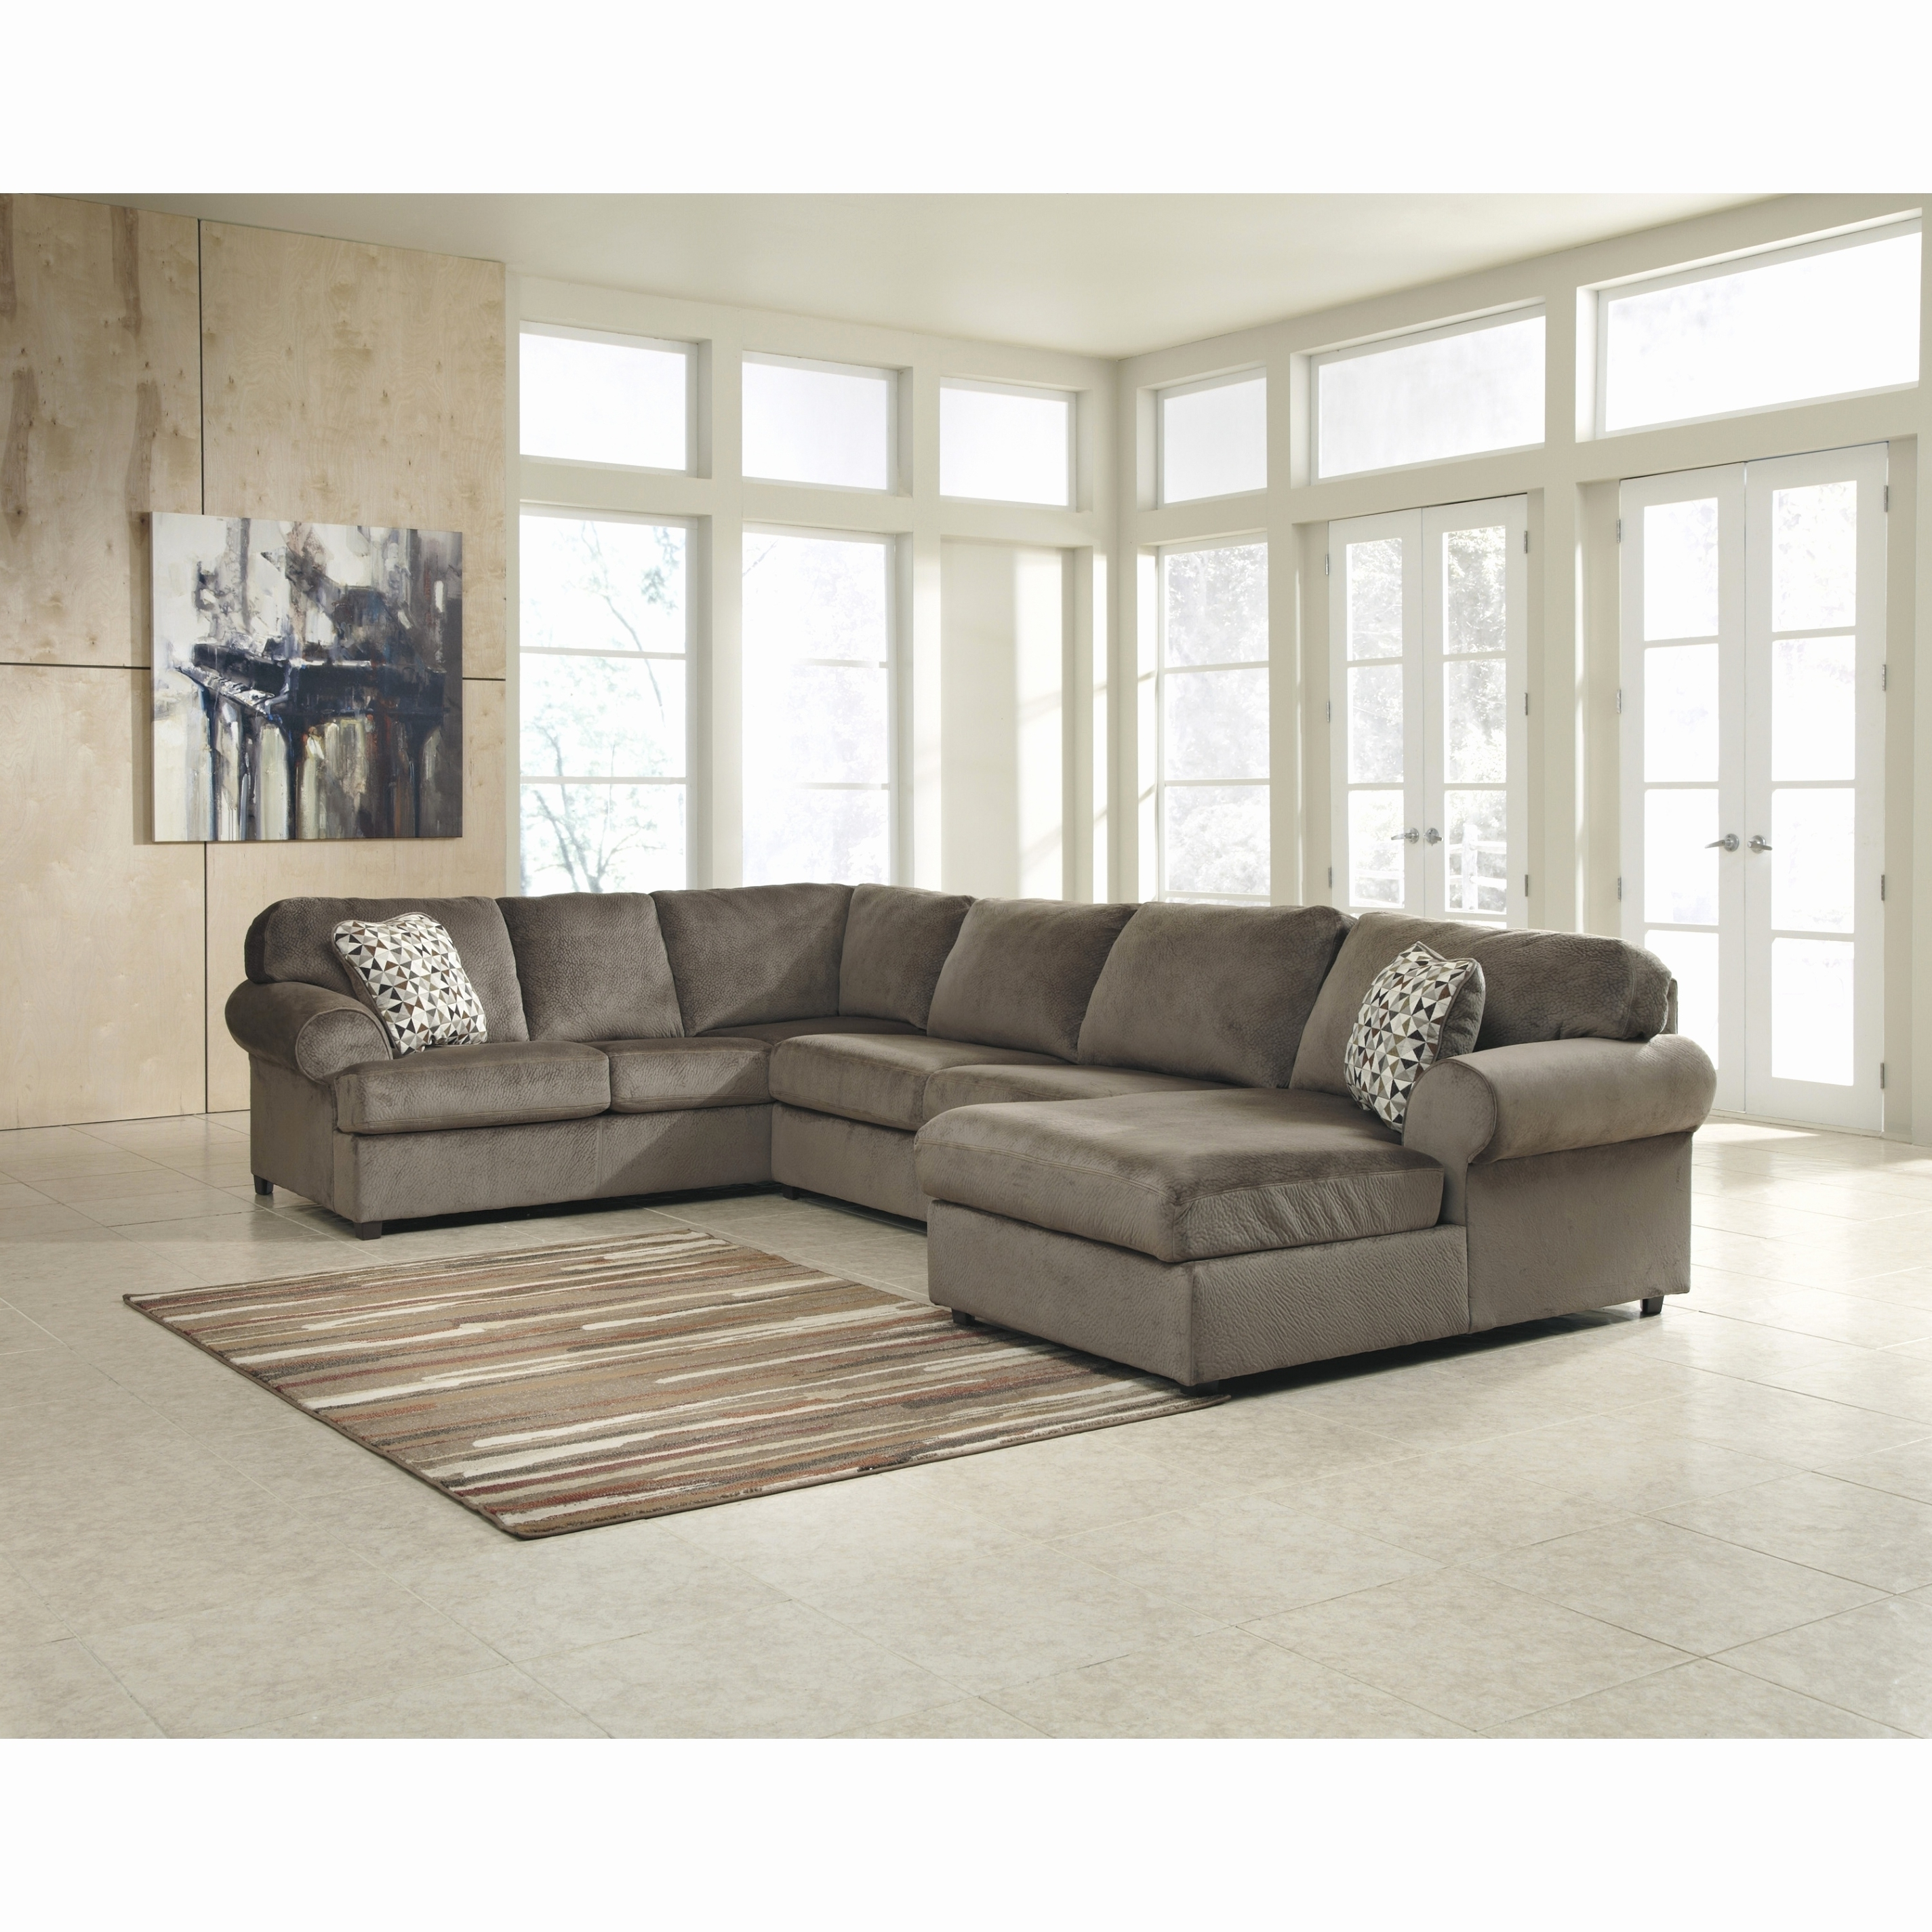 Current Tulsa Sectional Sofas In Unique Sofas And Sectionals 2018 – Couches And Sofas Ideas (View 17 of 20)